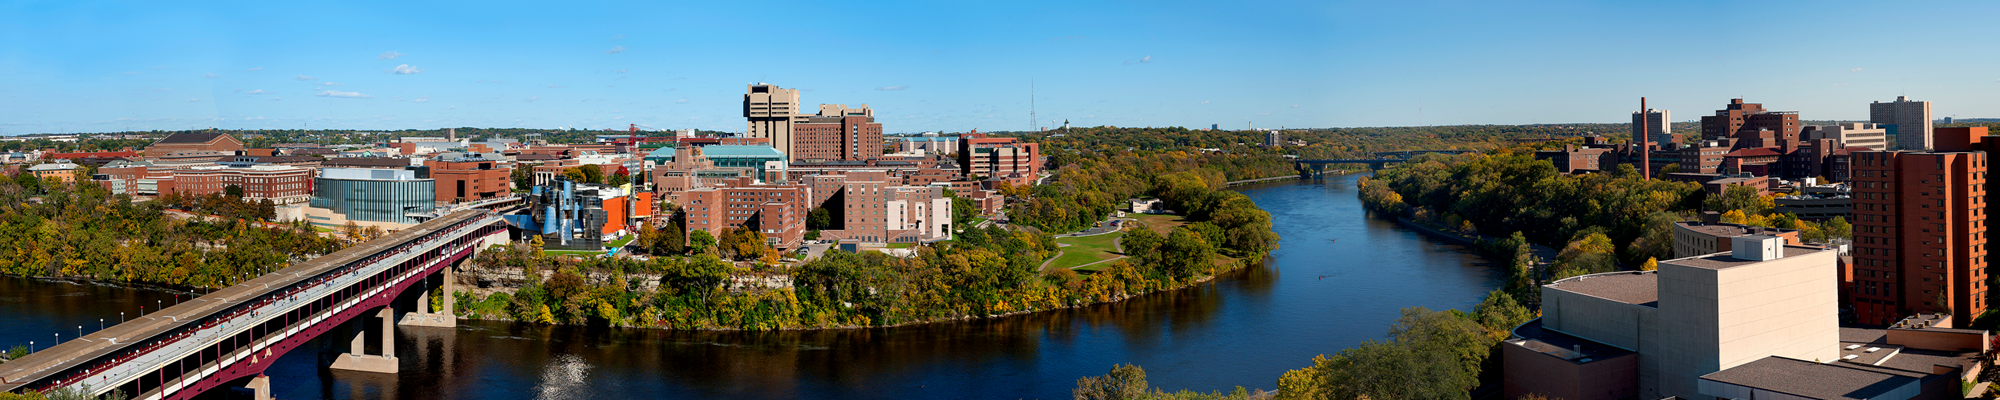 Panoramic view of East Bank over the Mississippi River